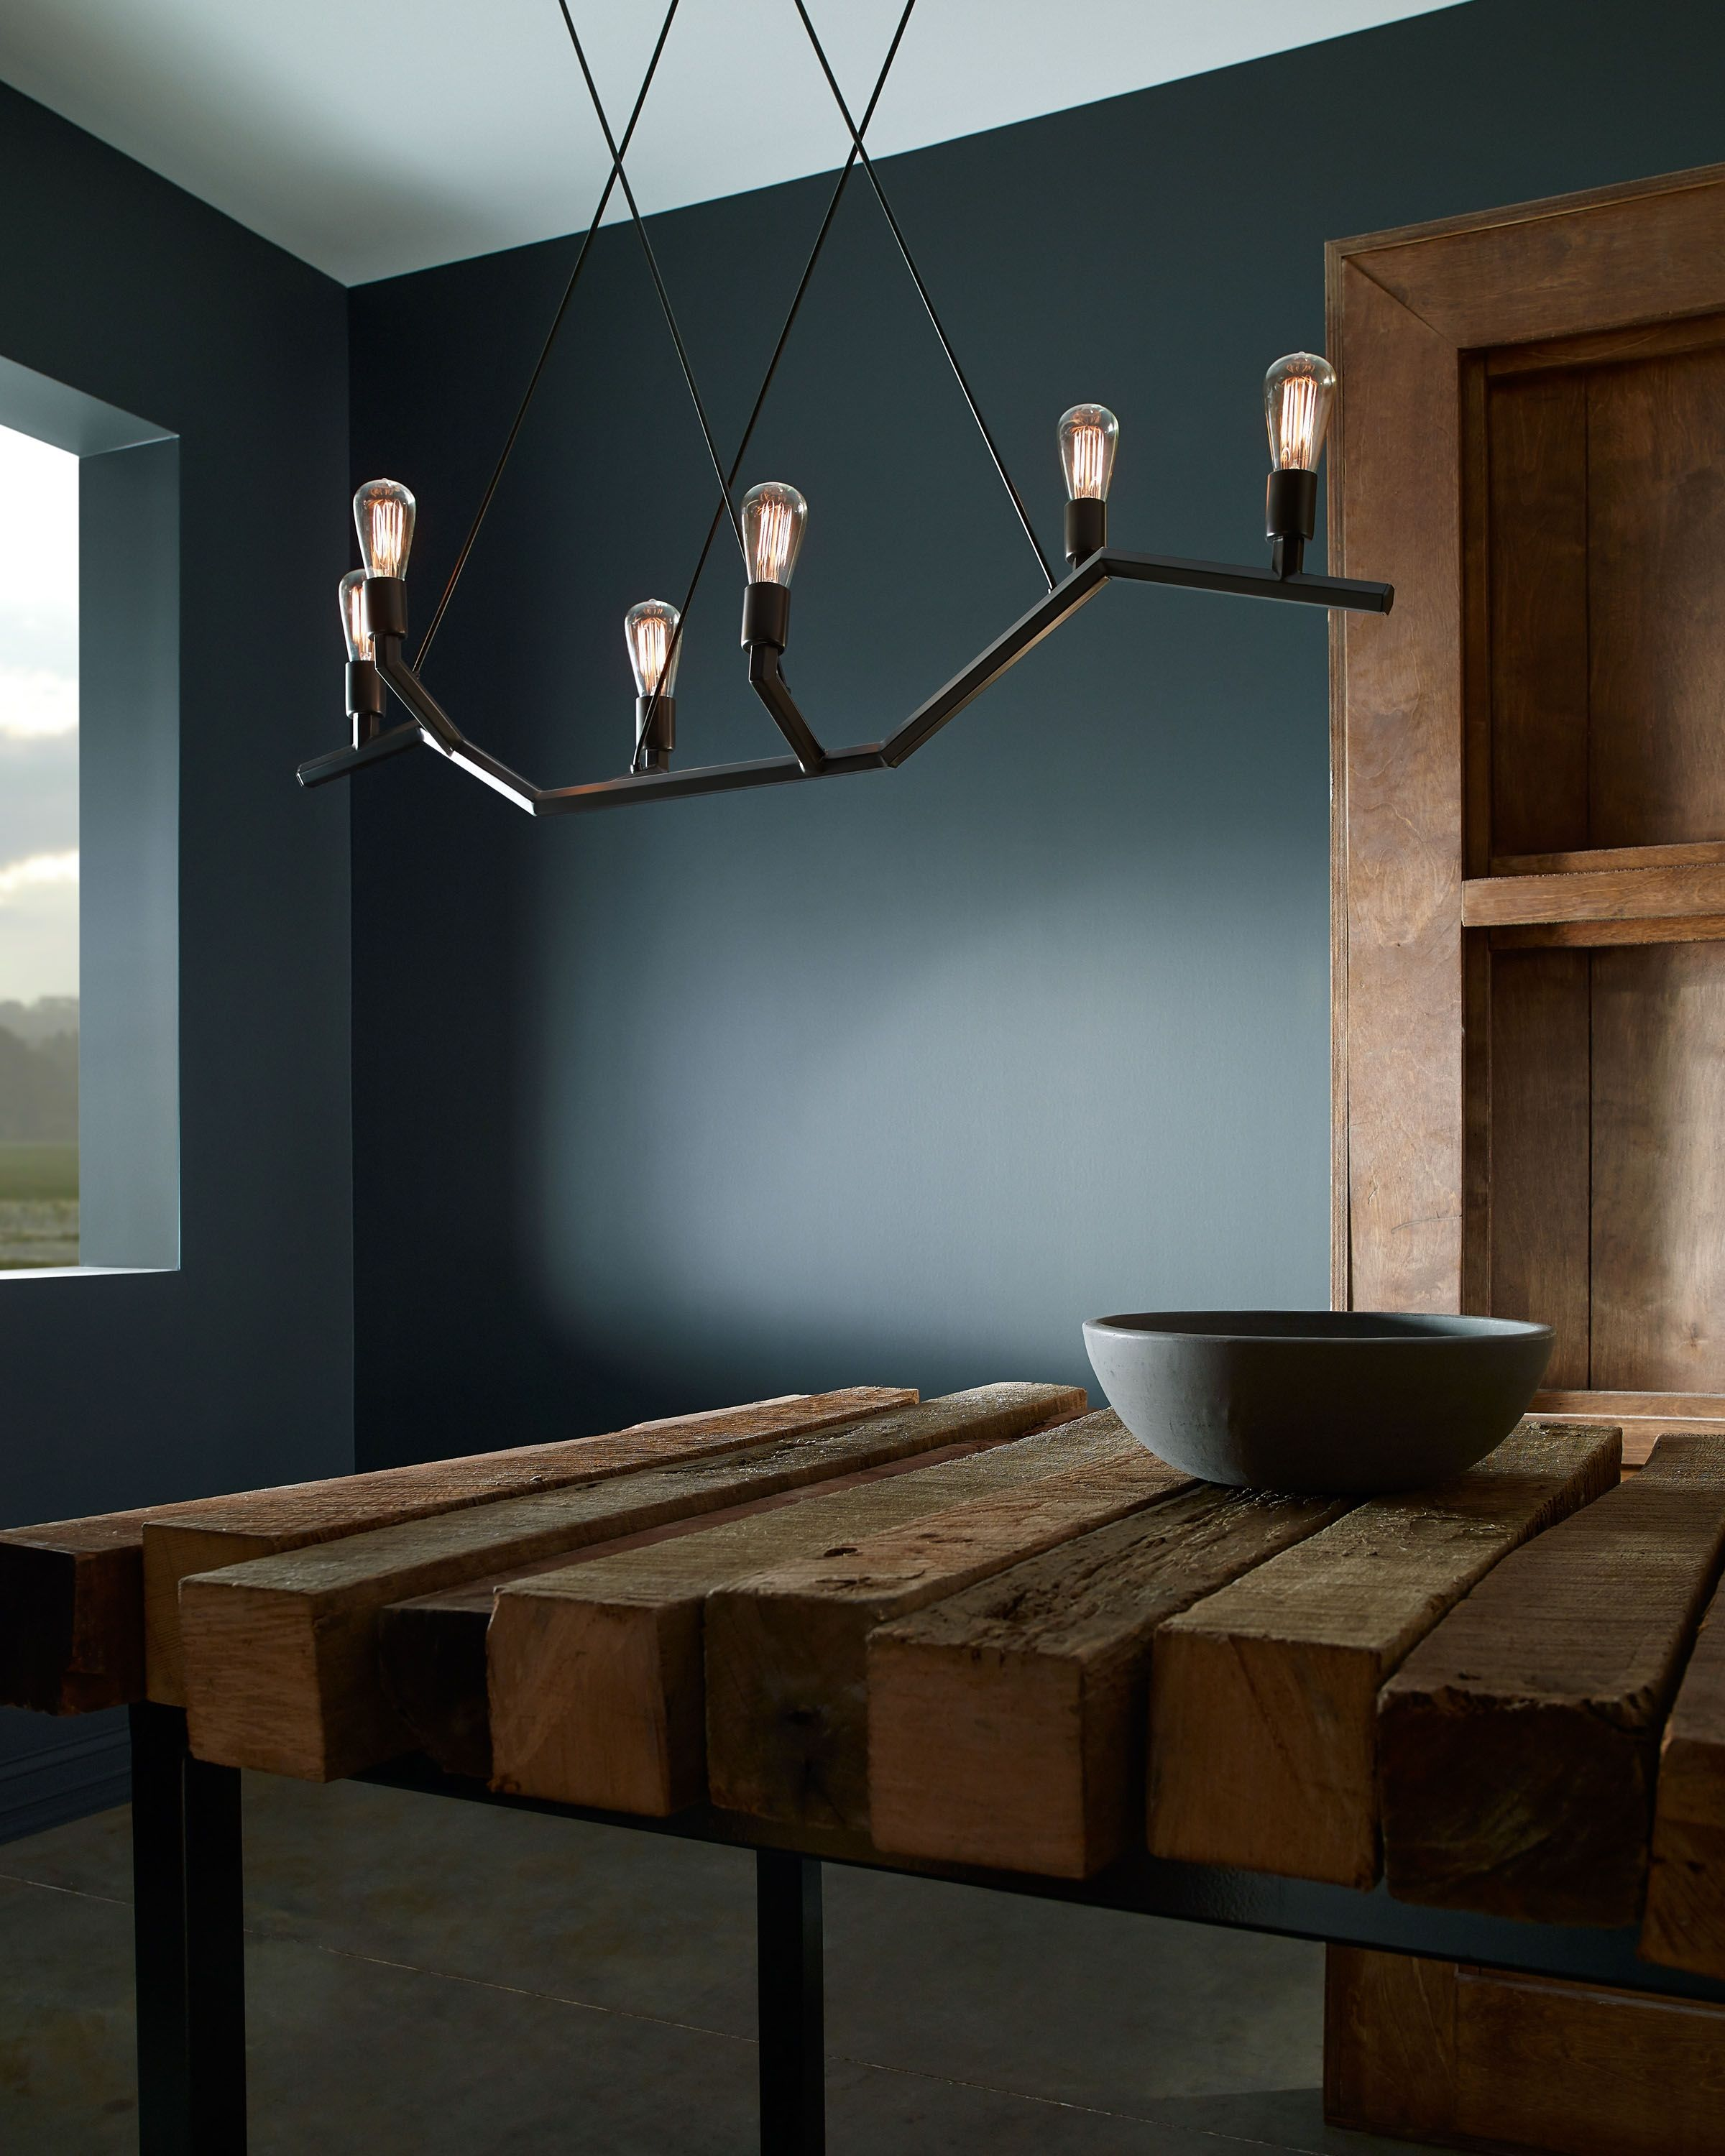 Akimbo Linear Suspension Lighting By Tech Jagged Lines Asymmetrical Shape And Exposed Edison